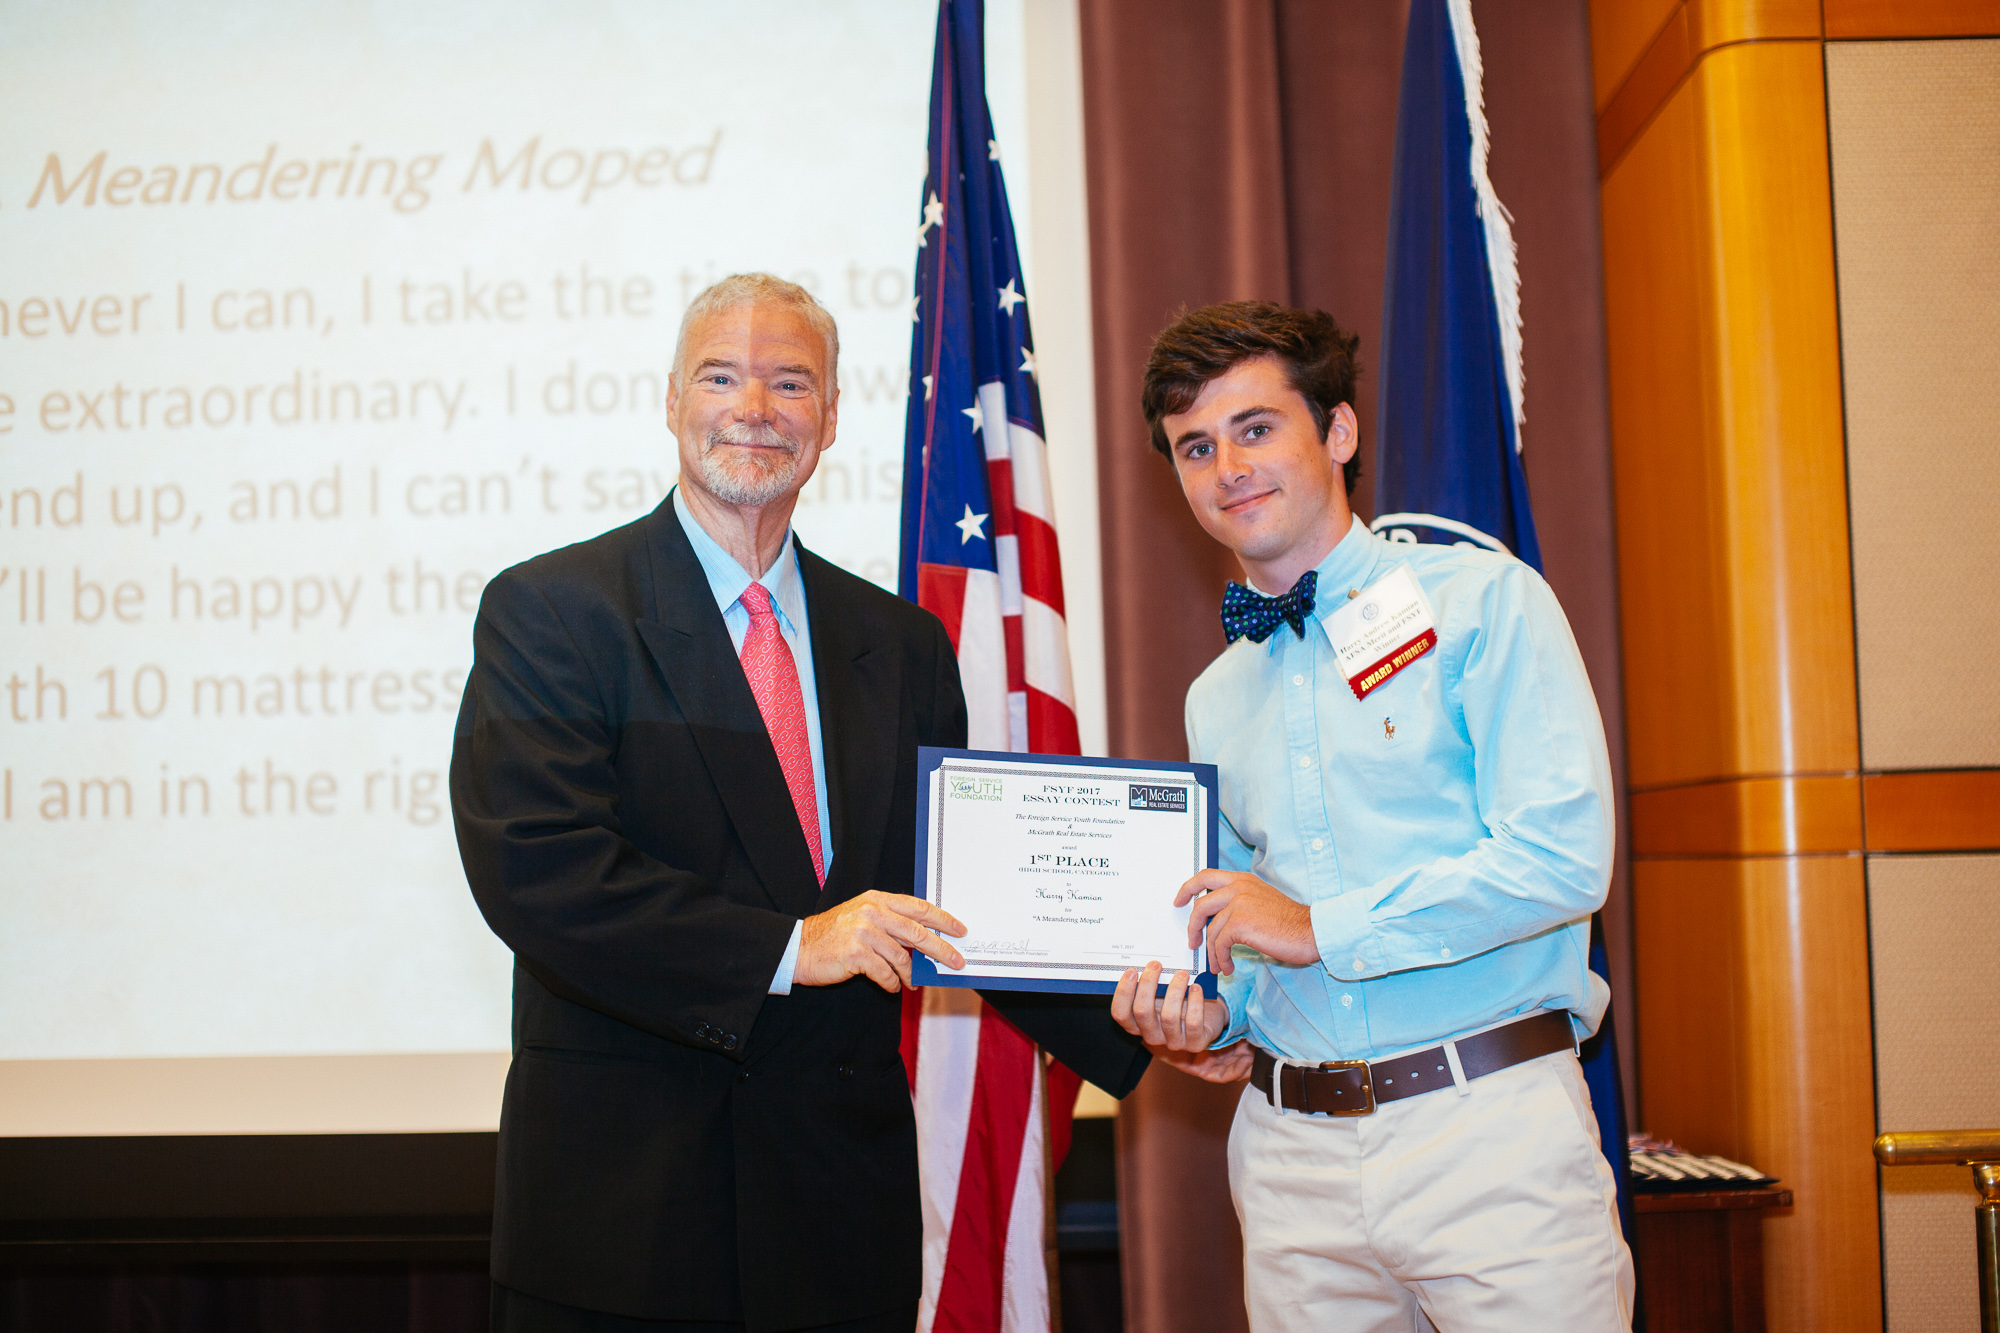 Foreign service essay contest